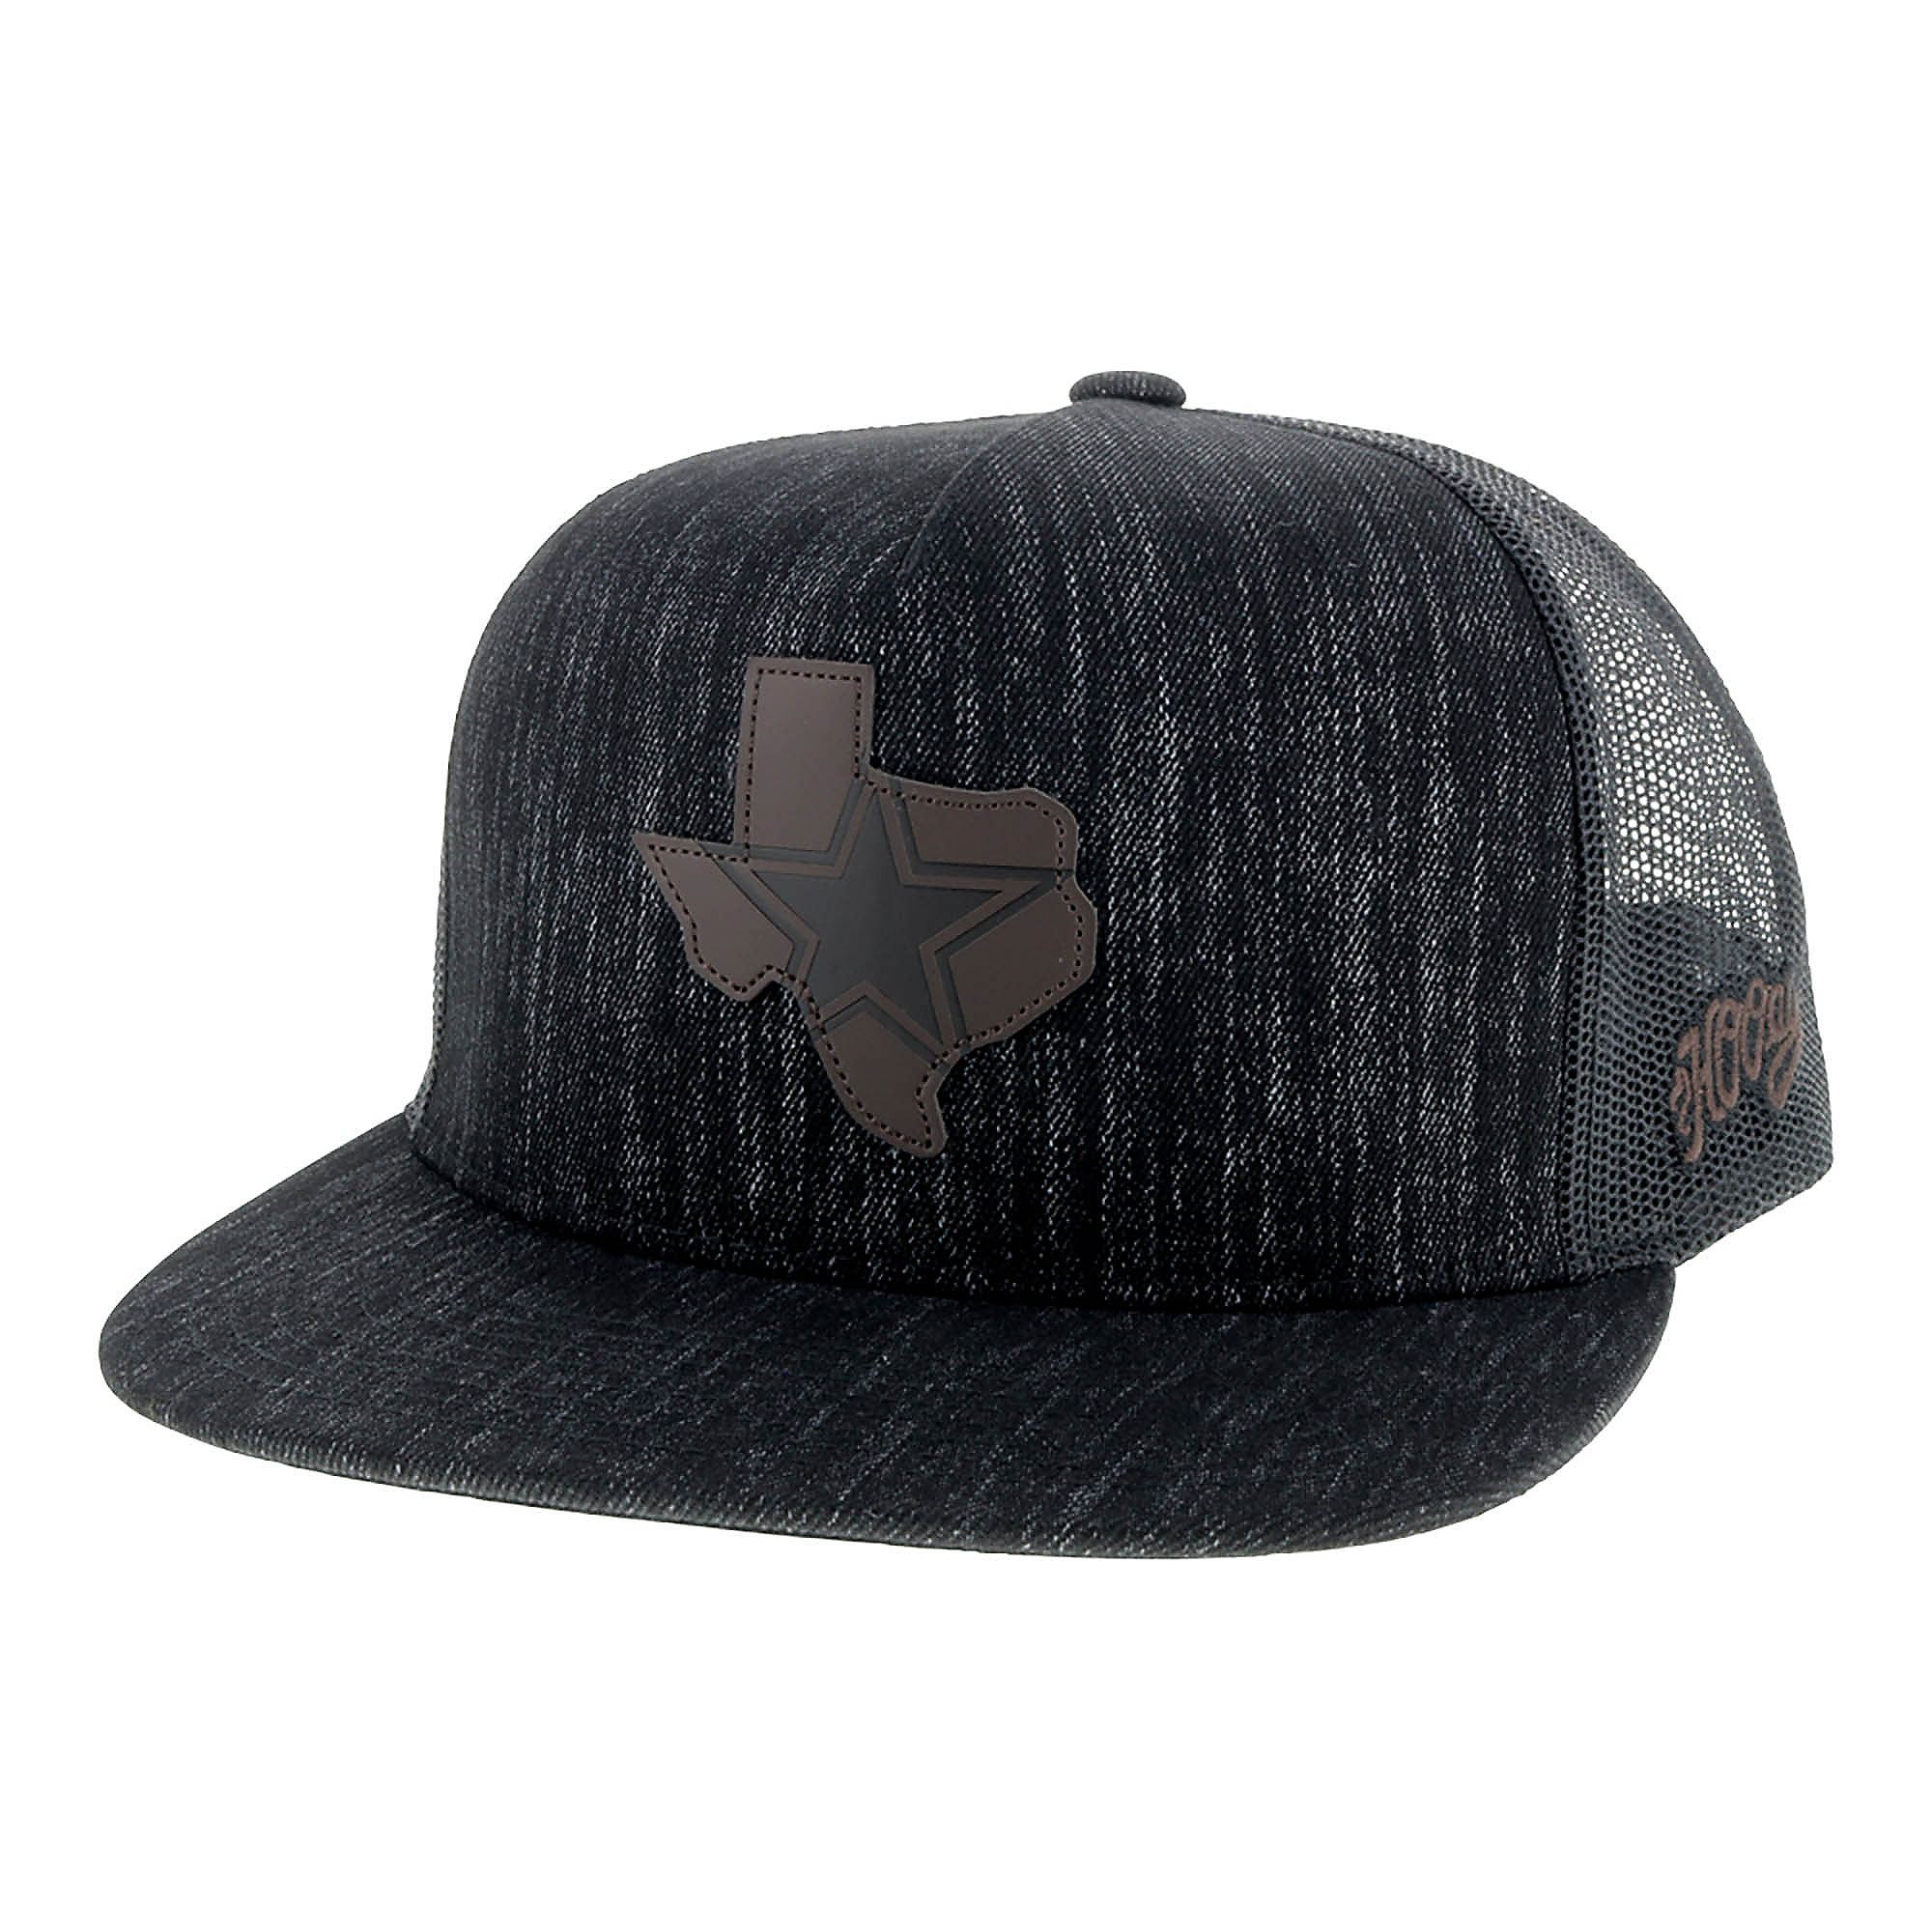 Dallas Cowboys Hooey Mens Black Denim State Star Adjustable Hat